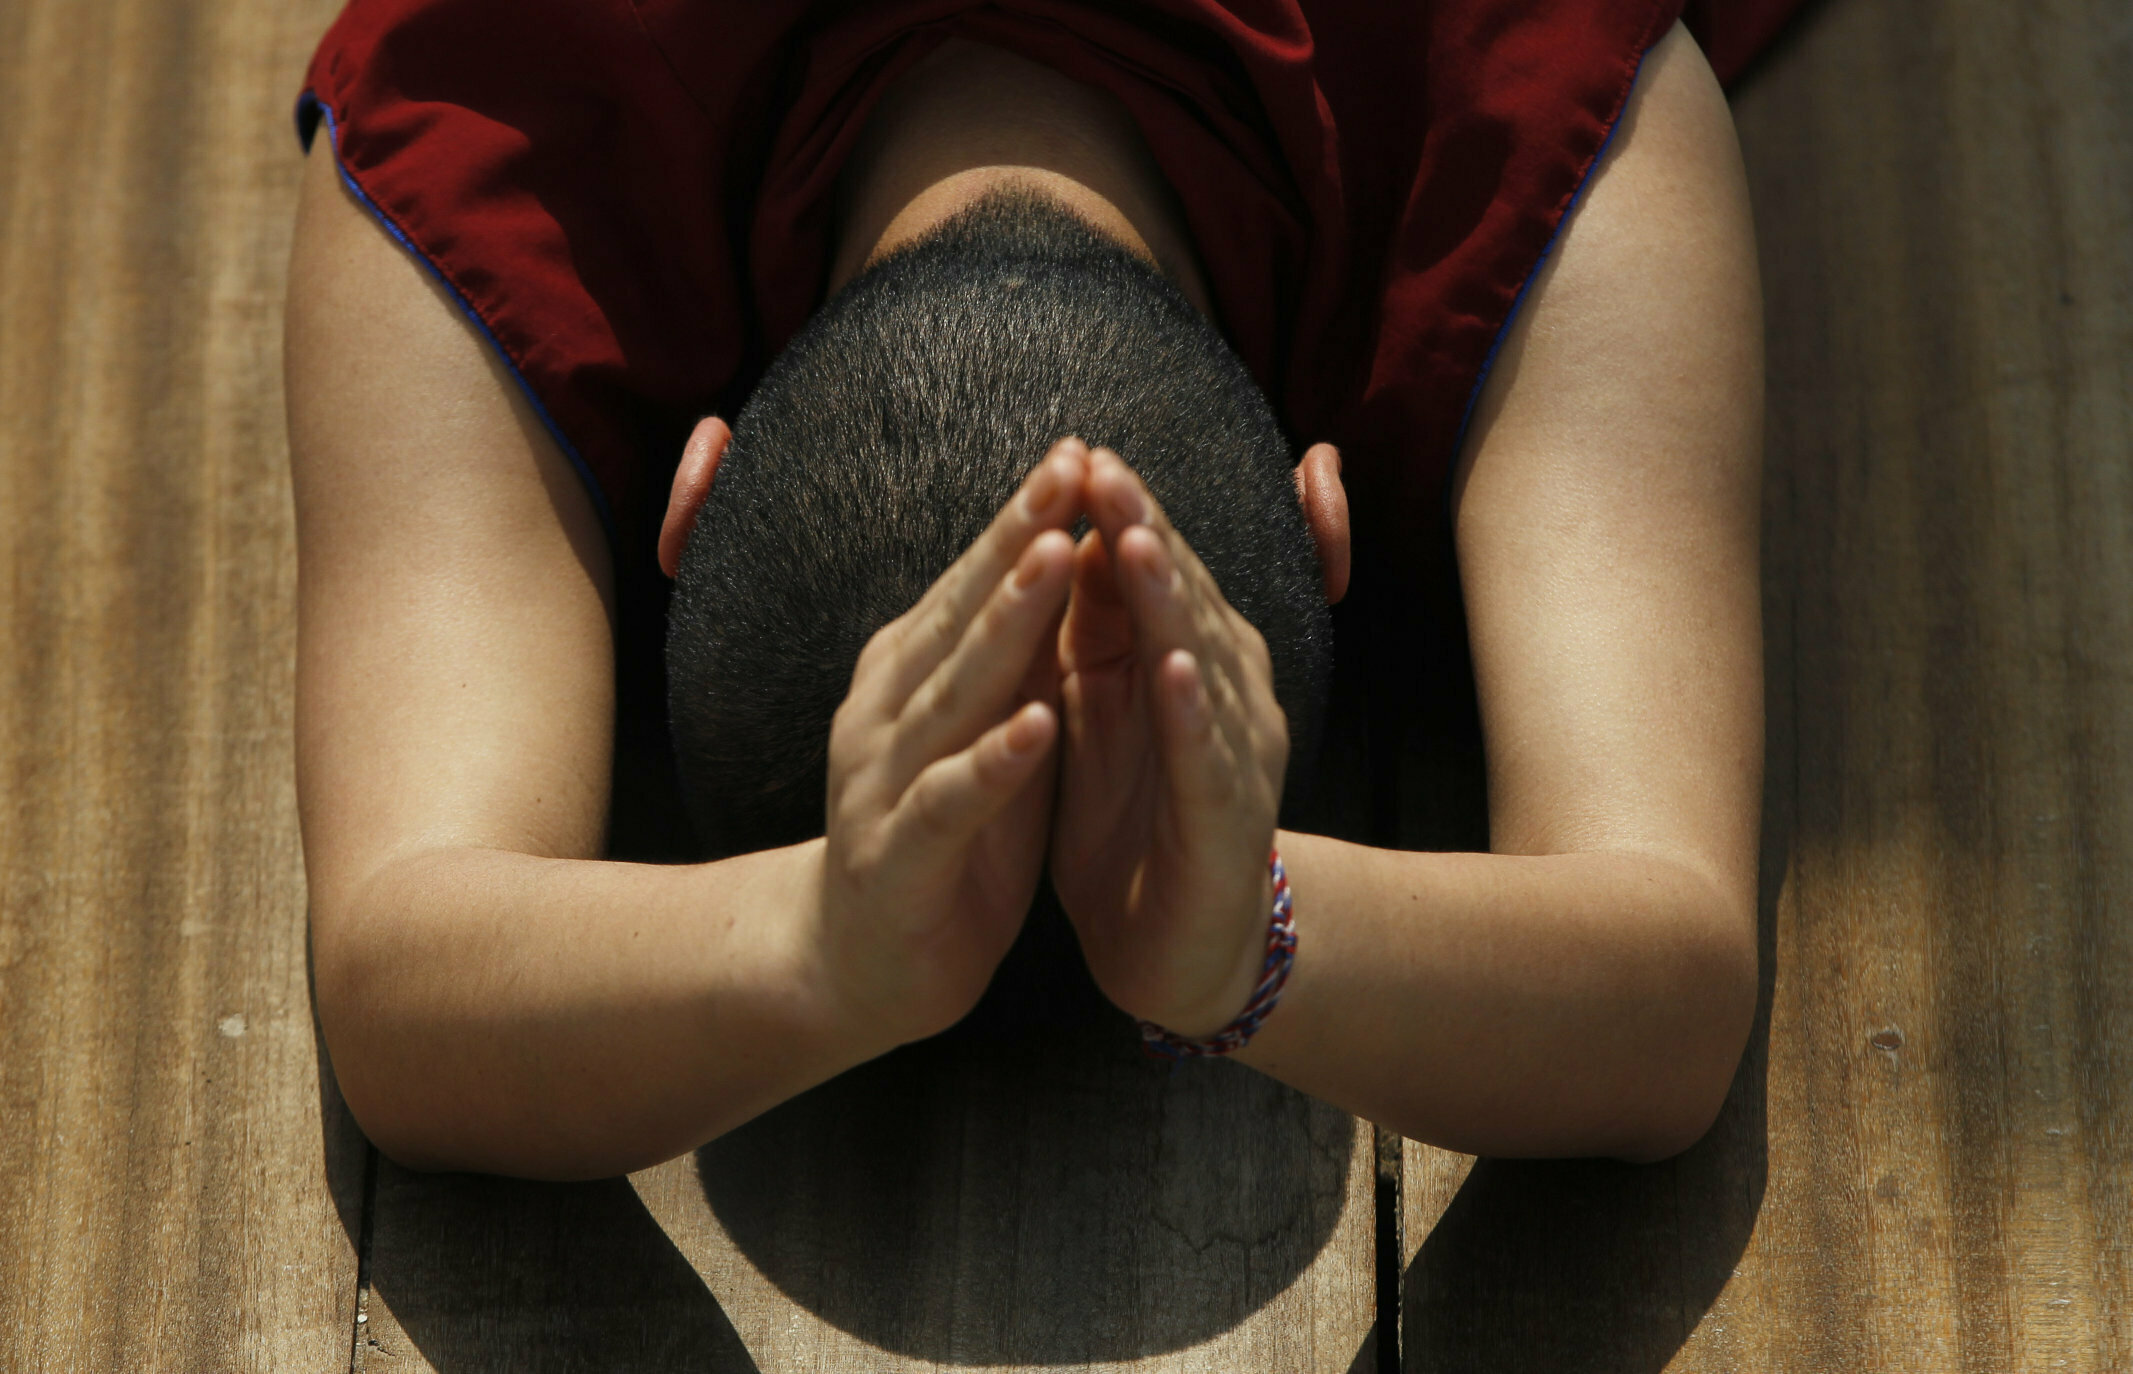 A Buddhist nun prostrates performing Buddhist religious rituals during Buddha Jayanti, or Buddha Purnima, festival in Kathmandu, Nepal, Saturday, May 18, 2019. The festival marks the triple events of Gautam Buddha's life: his birth, his enlightenment and his attaining a state of Nirvana that frees believers from the circle of death and rebirth. (AP Photo/Niranjan Shrestha)